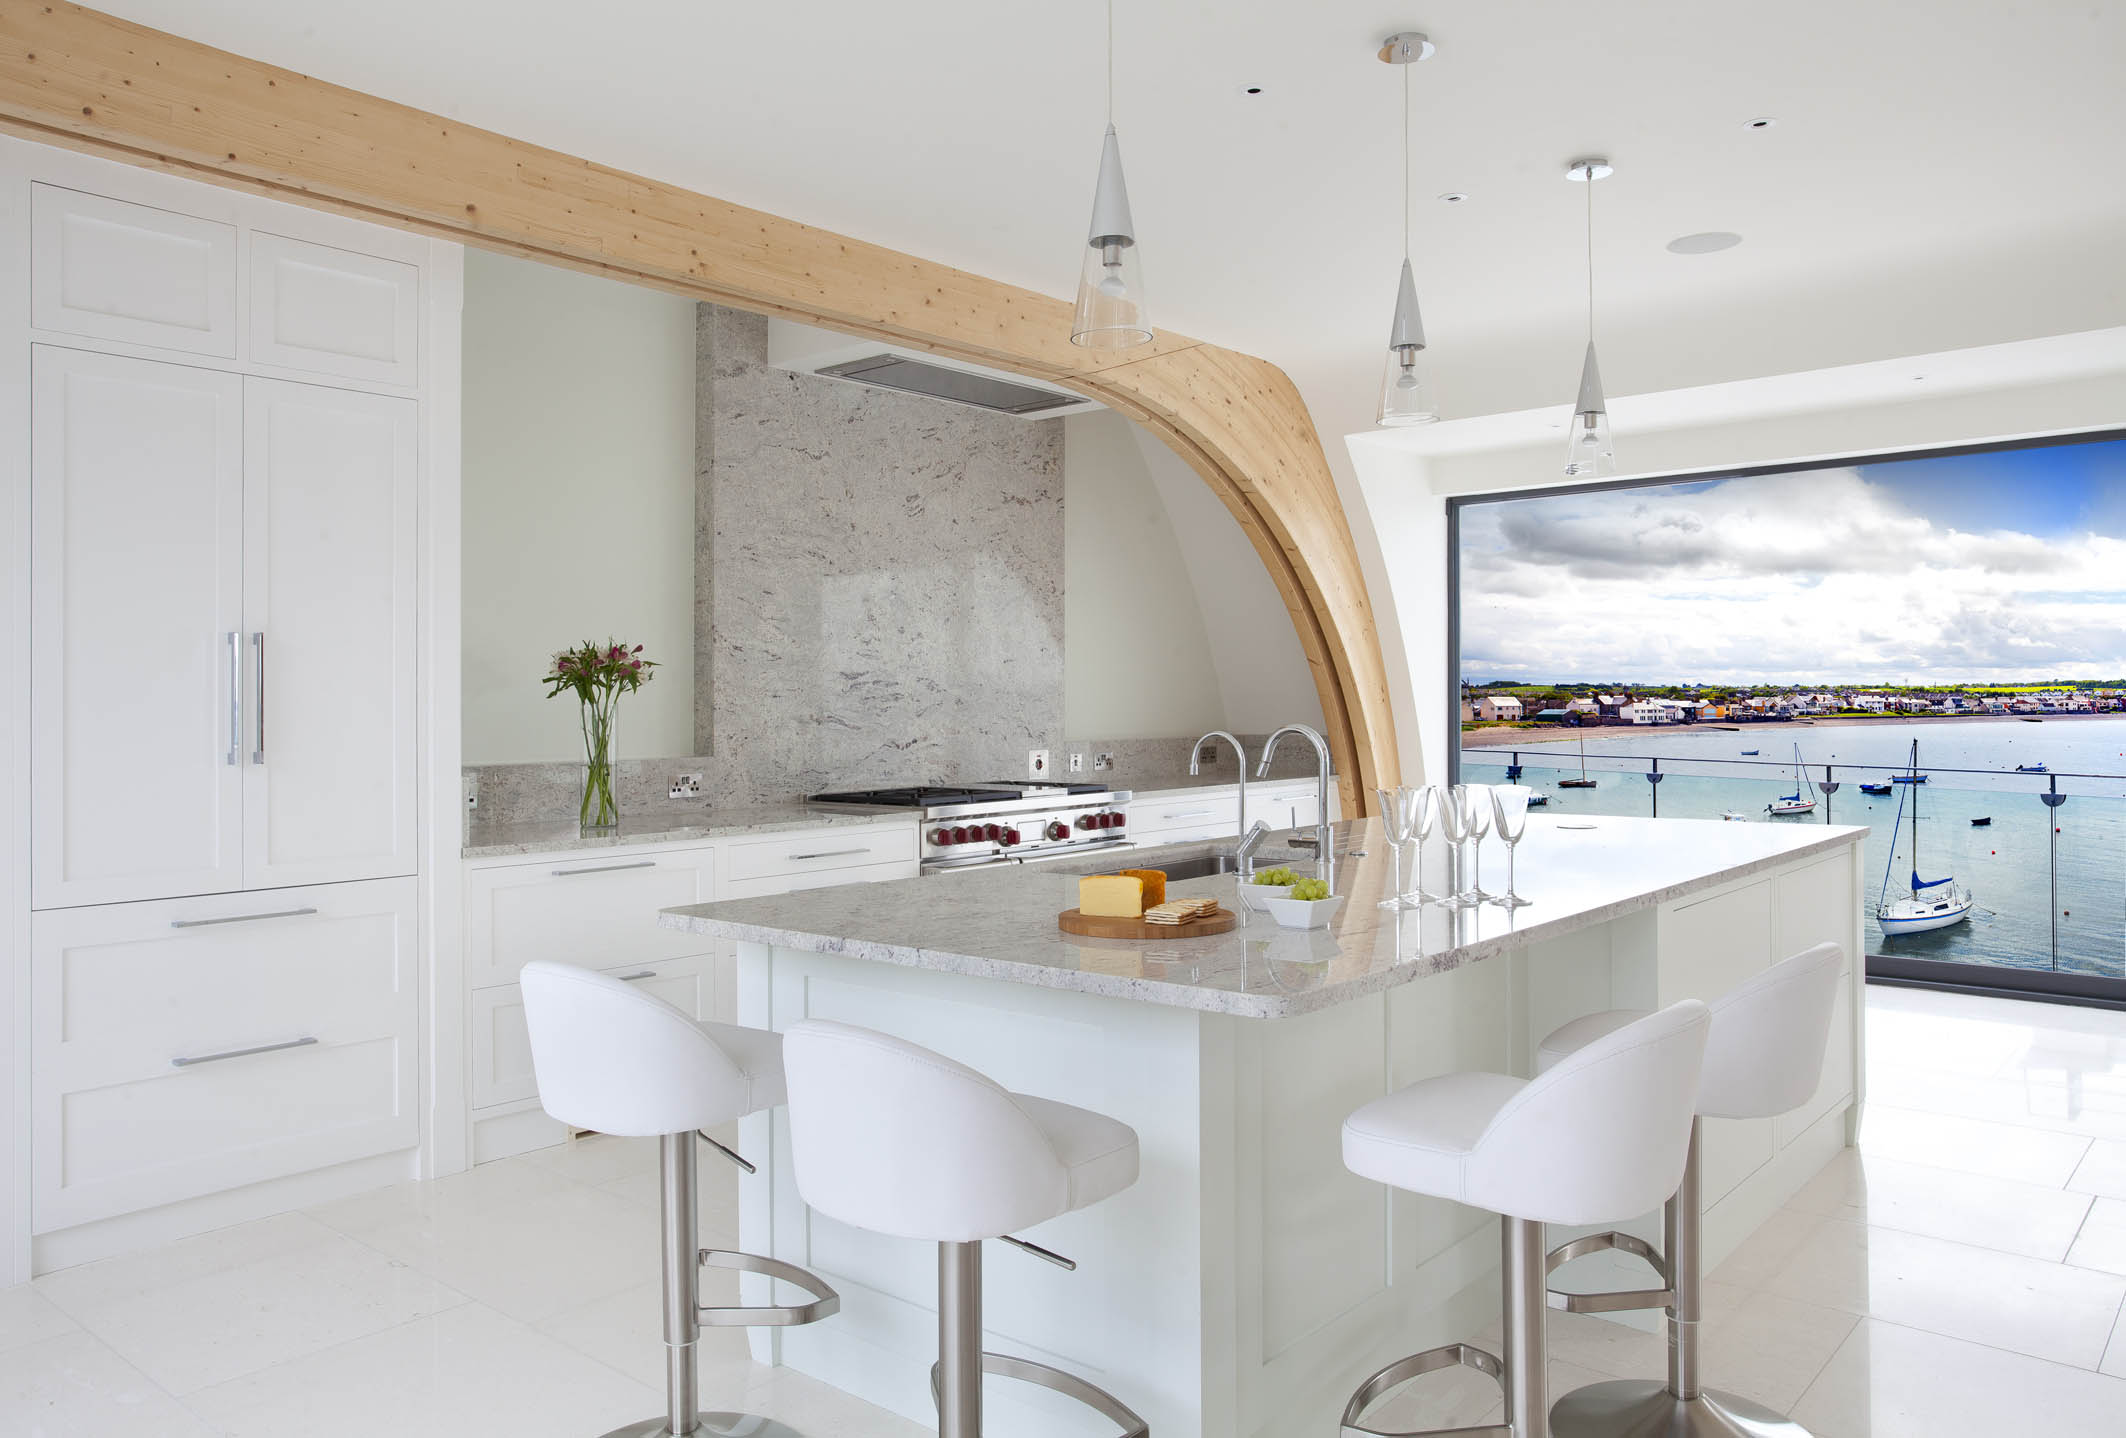 Handmade Kitchens Ireland - Luxury handpainted kitchens in Dublin ...